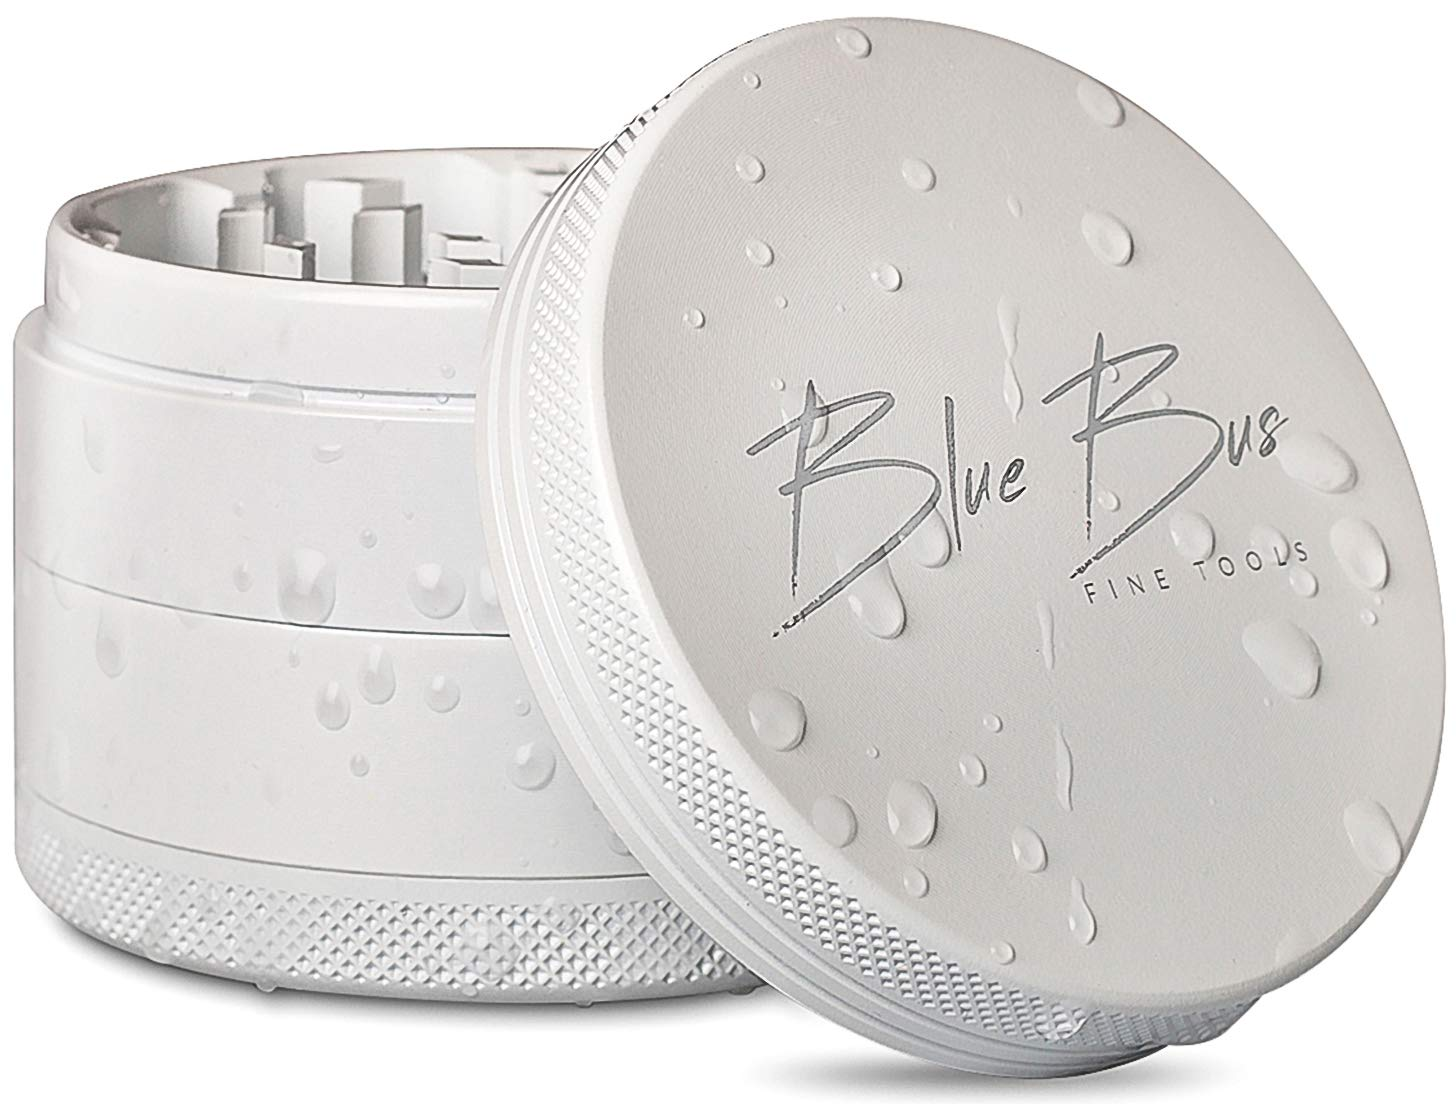 "#1 NON-STICK Best Ceramic Herb Grinder, Large 2.5"" inch 4-Piece, White color, PREMIUM design by BlueBus fine tools"